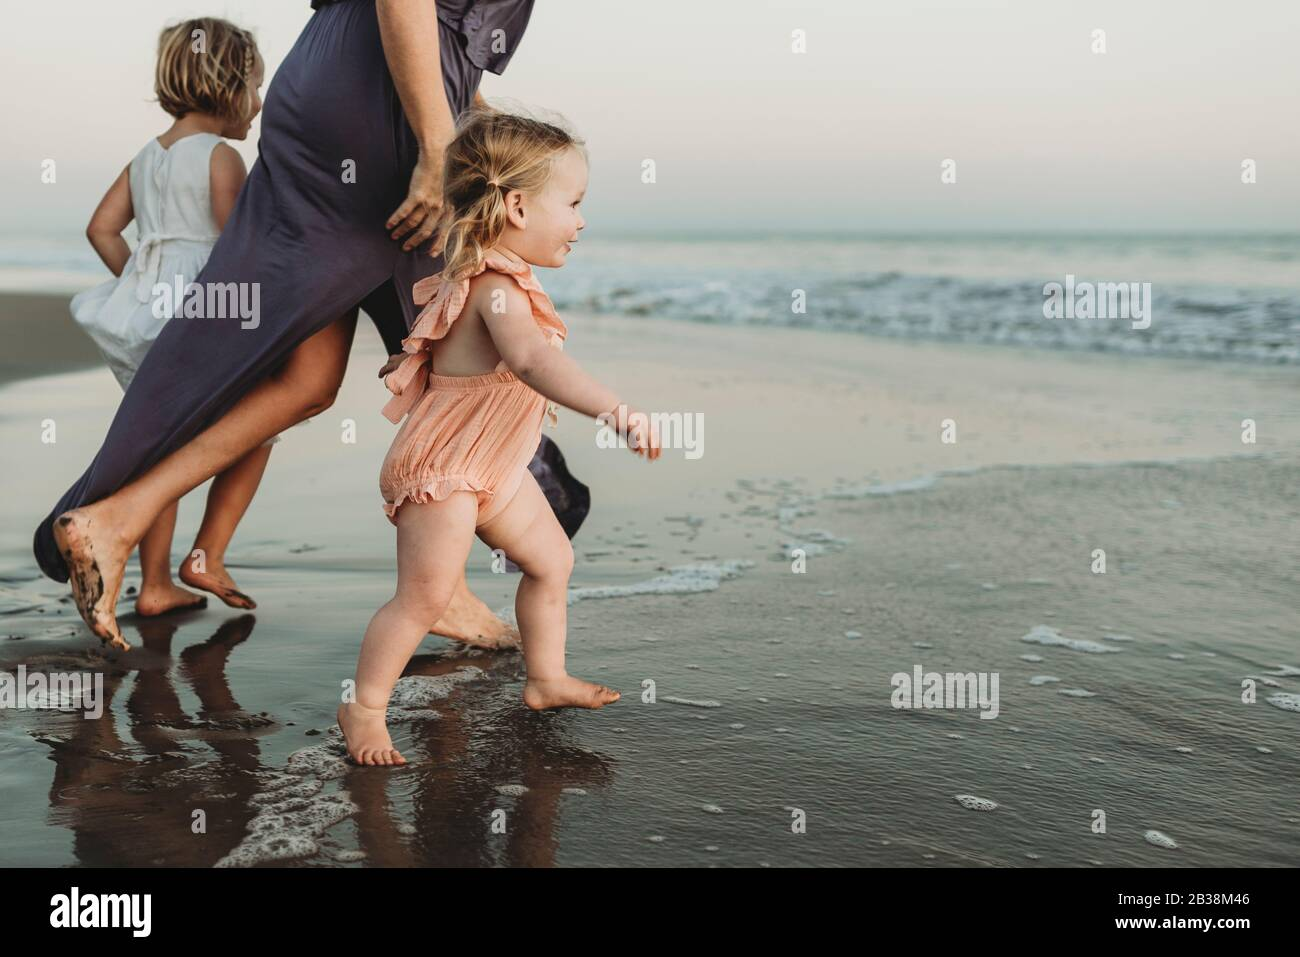 Side view of toddler girl running into the ocean at sunset Stock Photo